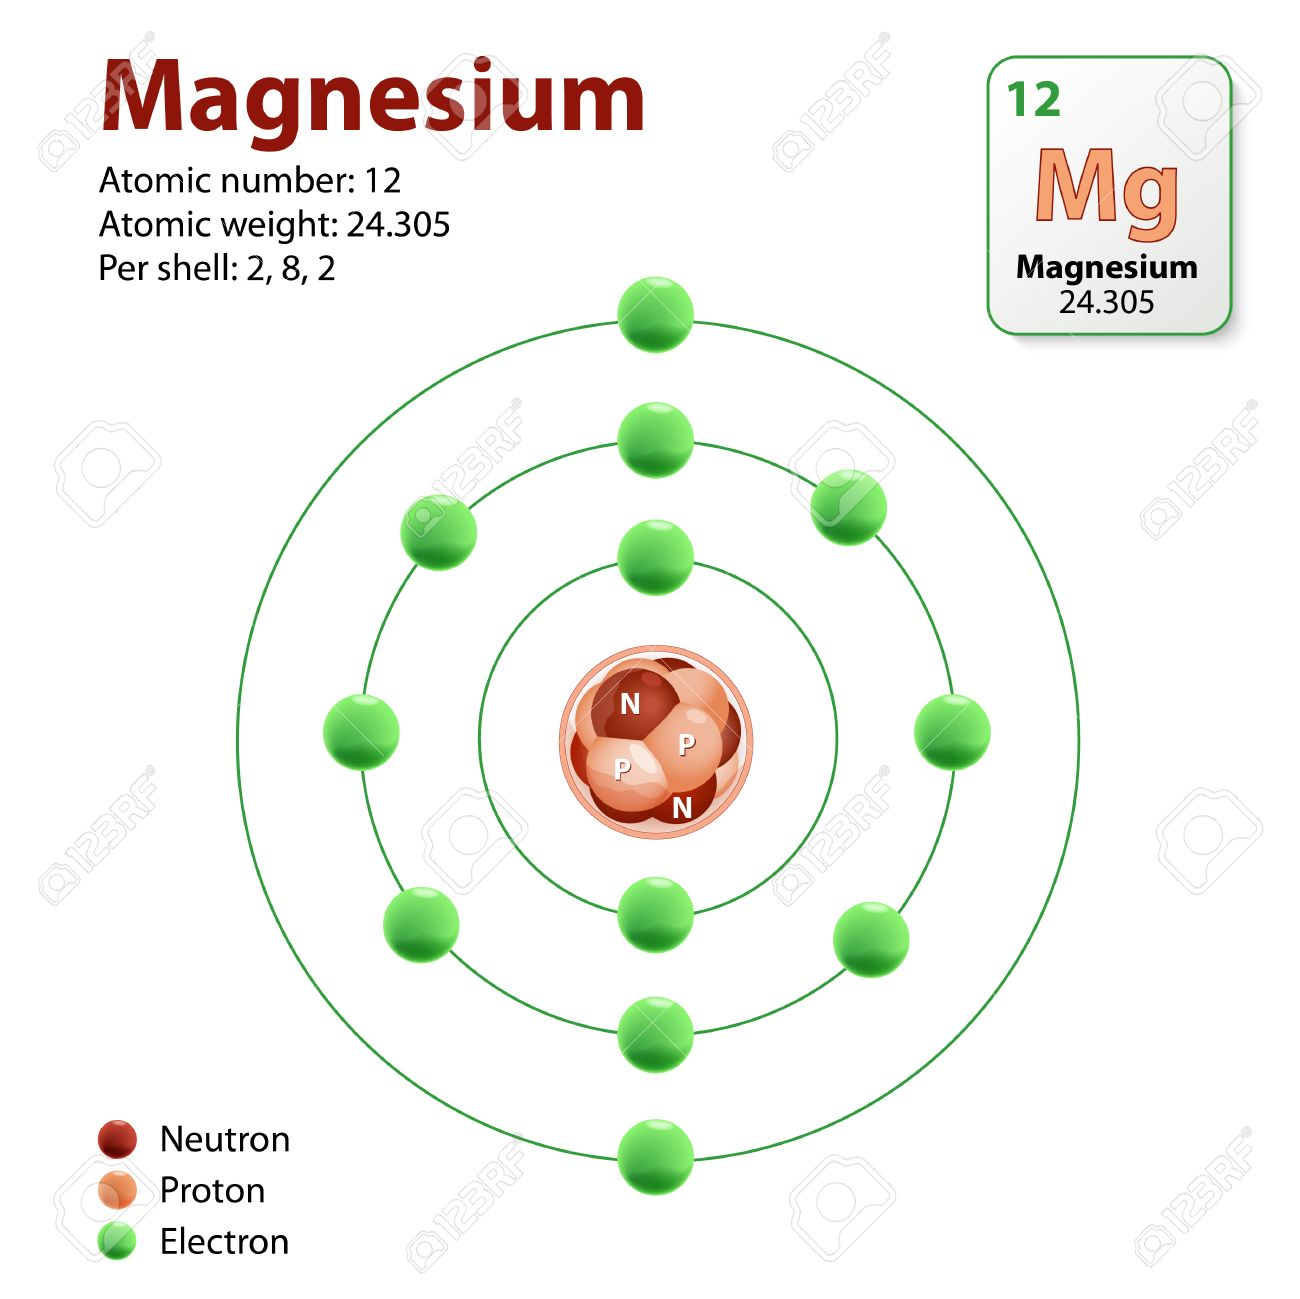 Magnesium atom diagram gallery diagram and writign diagram magnesium atom diagram representation of the element magnesium magnesium atom diagram representation of the element magnesium pooptronica Gallery